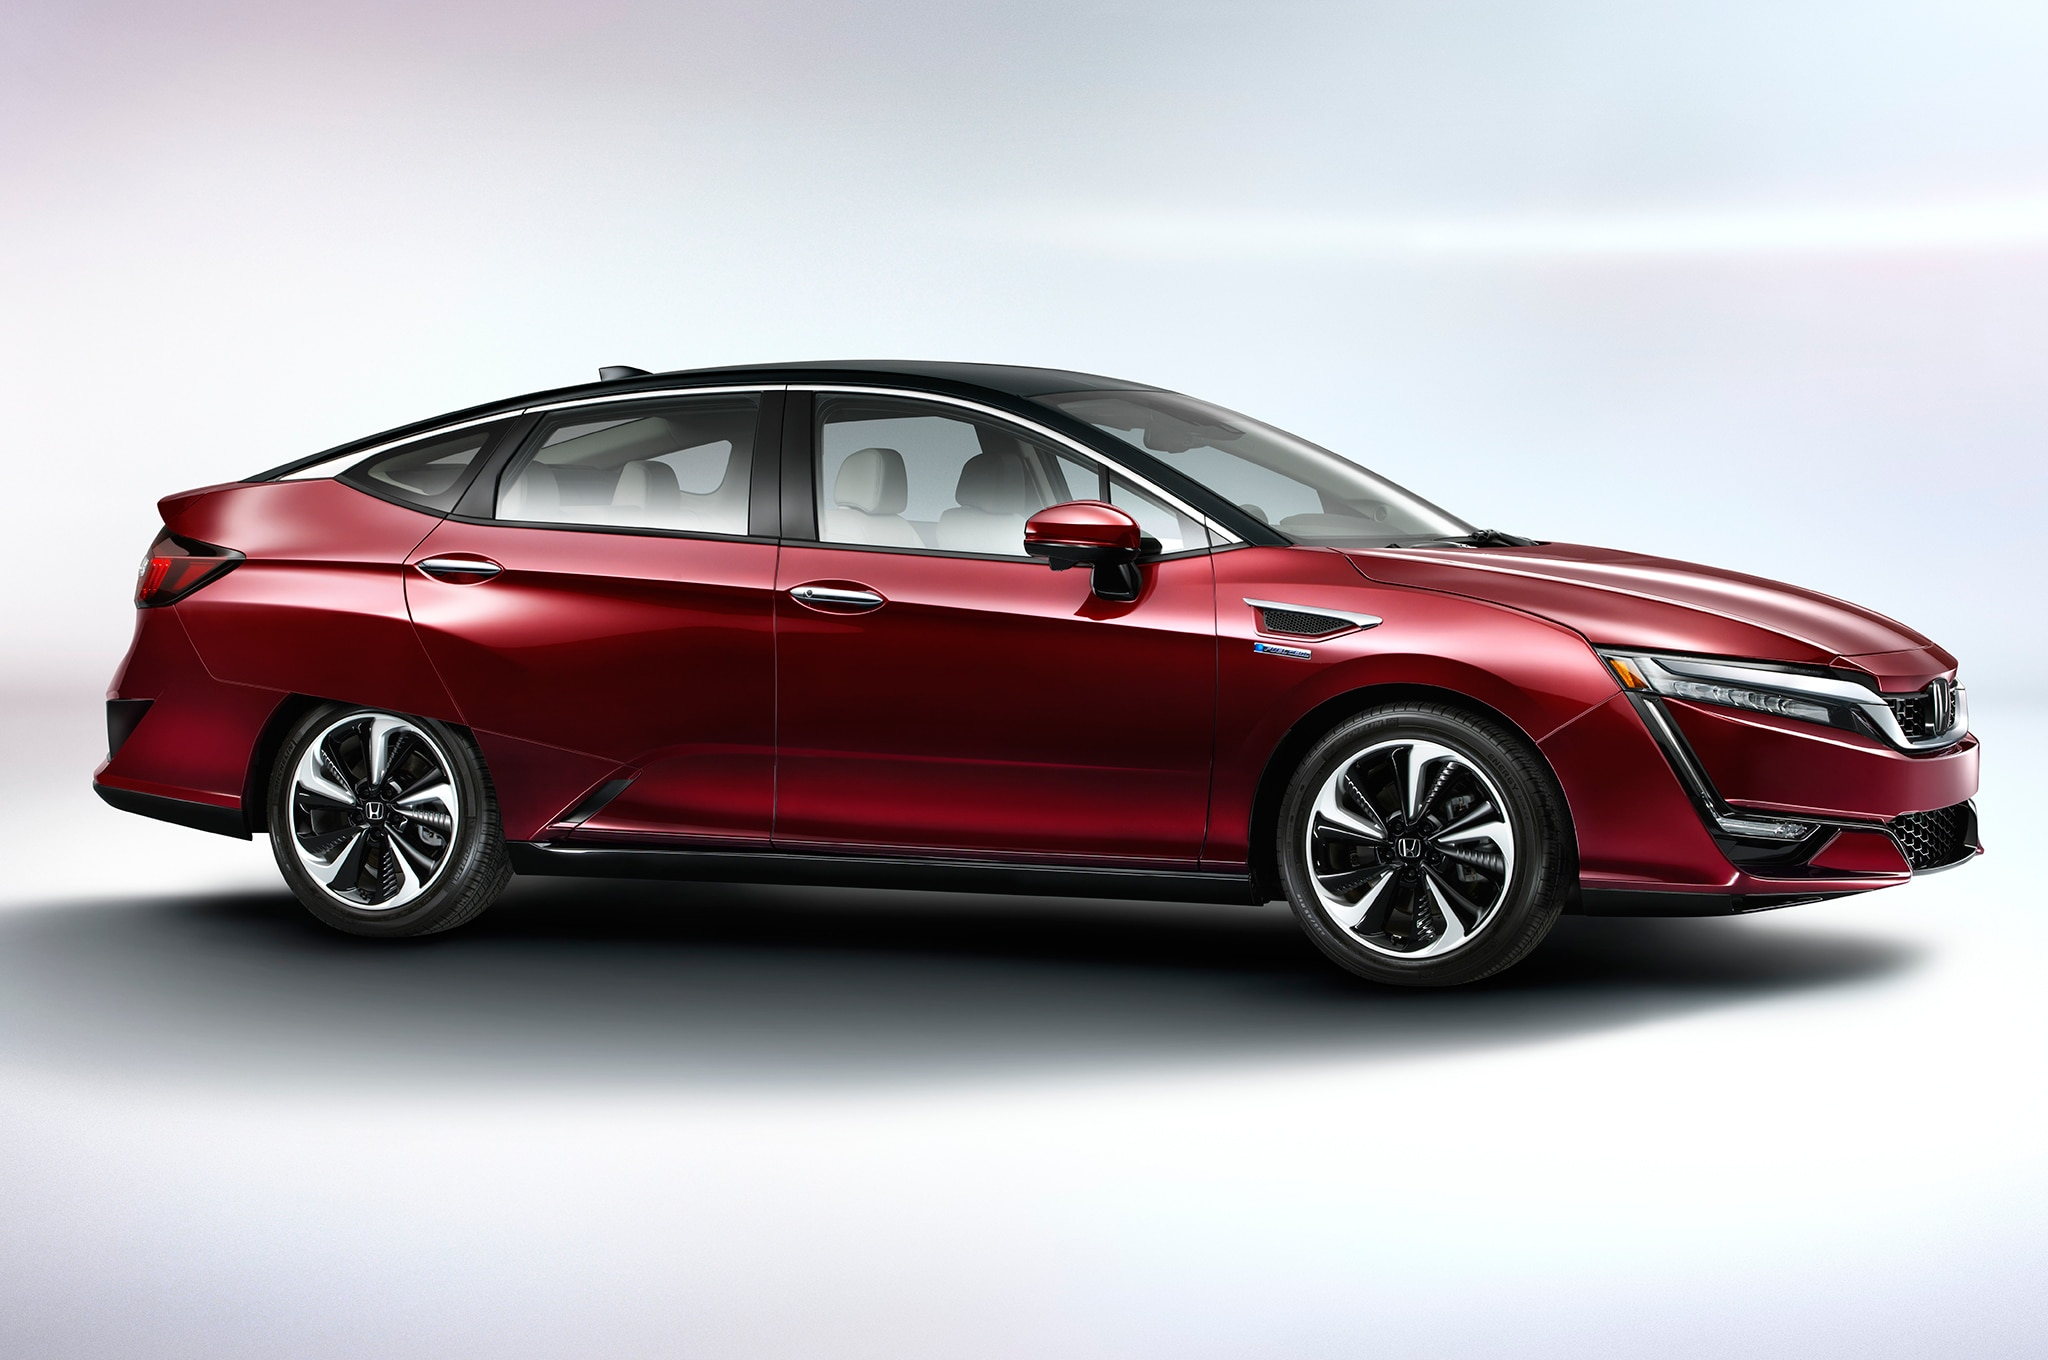 First Drive: 2017 Honda Clarity Fuel Cell | Automobile ...